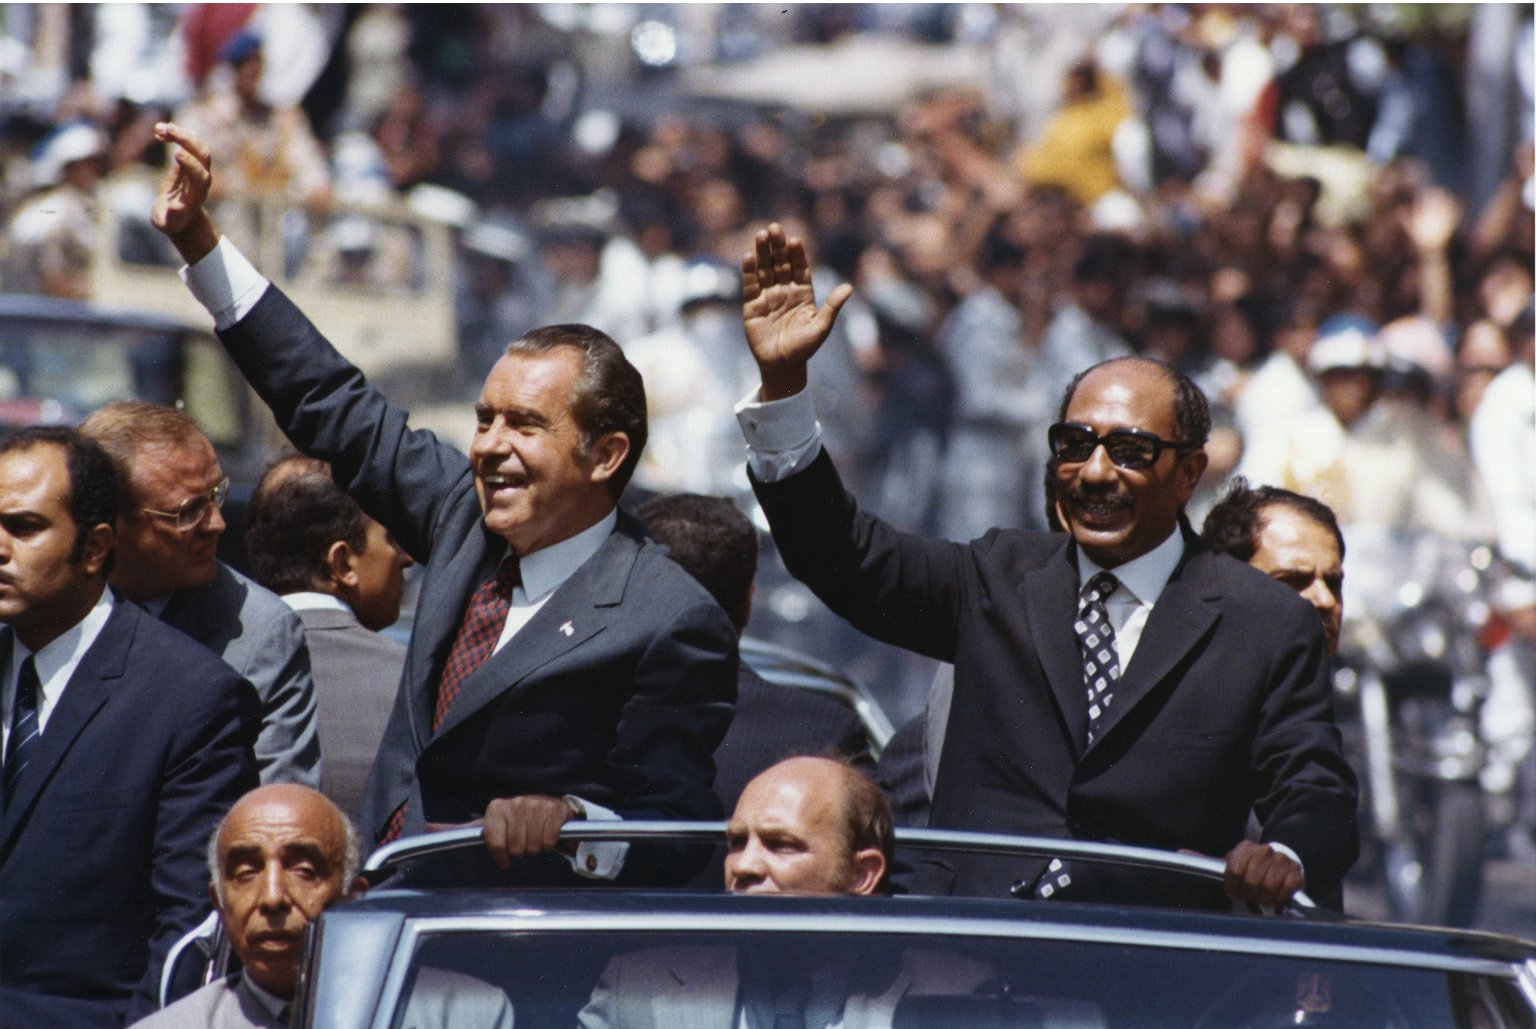 Anwar Sadat and Richard Nixon wave to crowds in Alexandria, Egypt (June 1974). Oliver F. Atkins photograph collection, Box 35, Folder 6. George Mason University. Libraries. Special Collections & Archives. Copyright not held by George Mason University Libraries. Restricted to personal, non-commercial use only. For permission to publish, contact Special Collections and Archives.